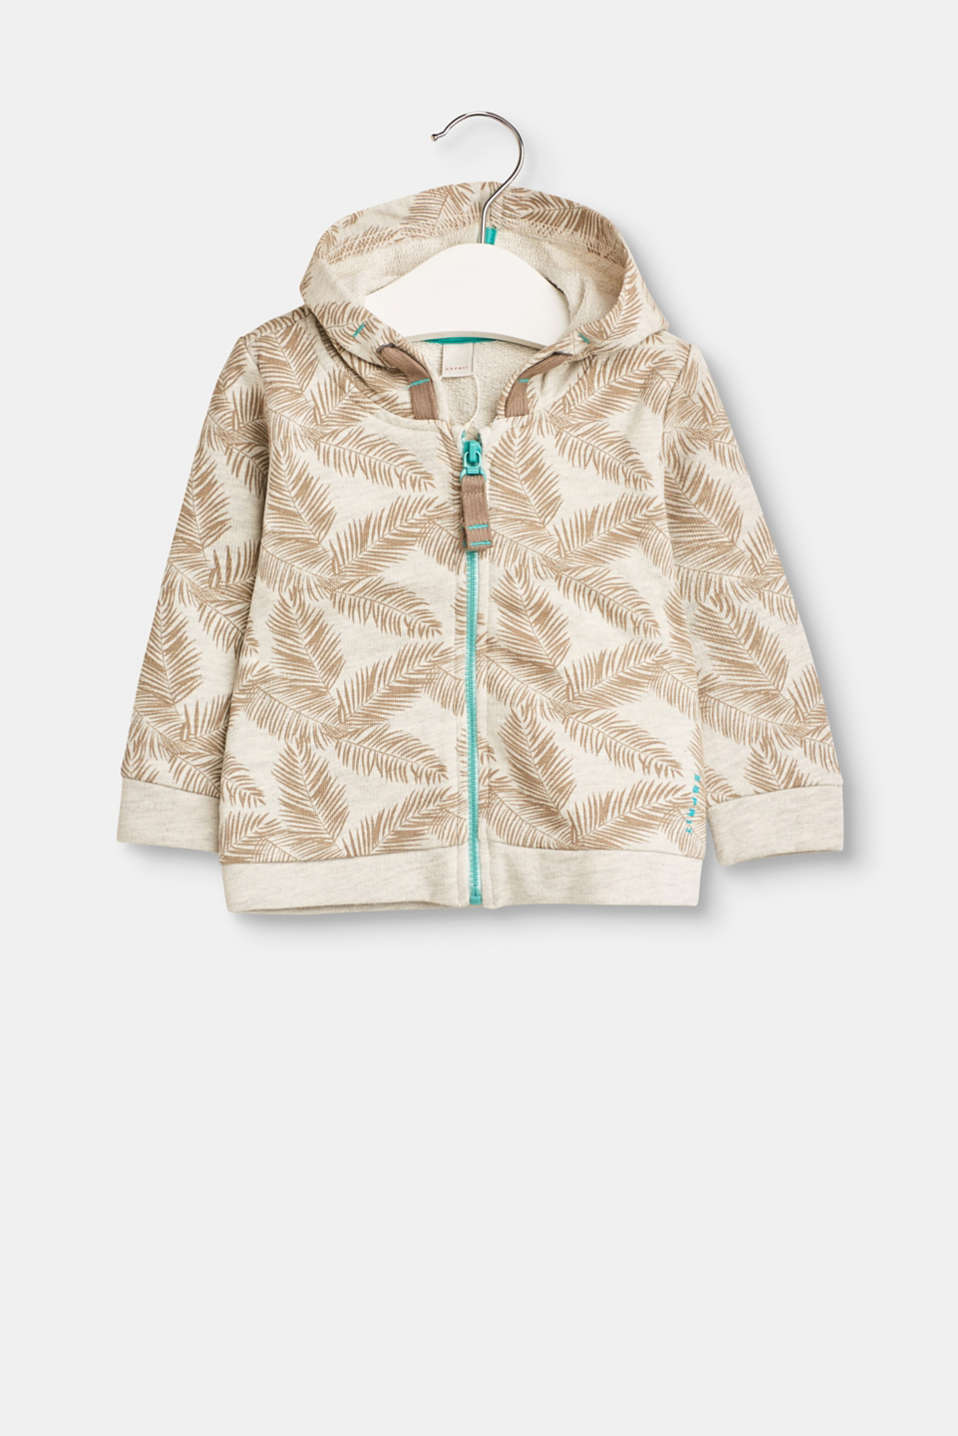 Esprit - Sweat-Cardigan mit Allover Blätter-Print